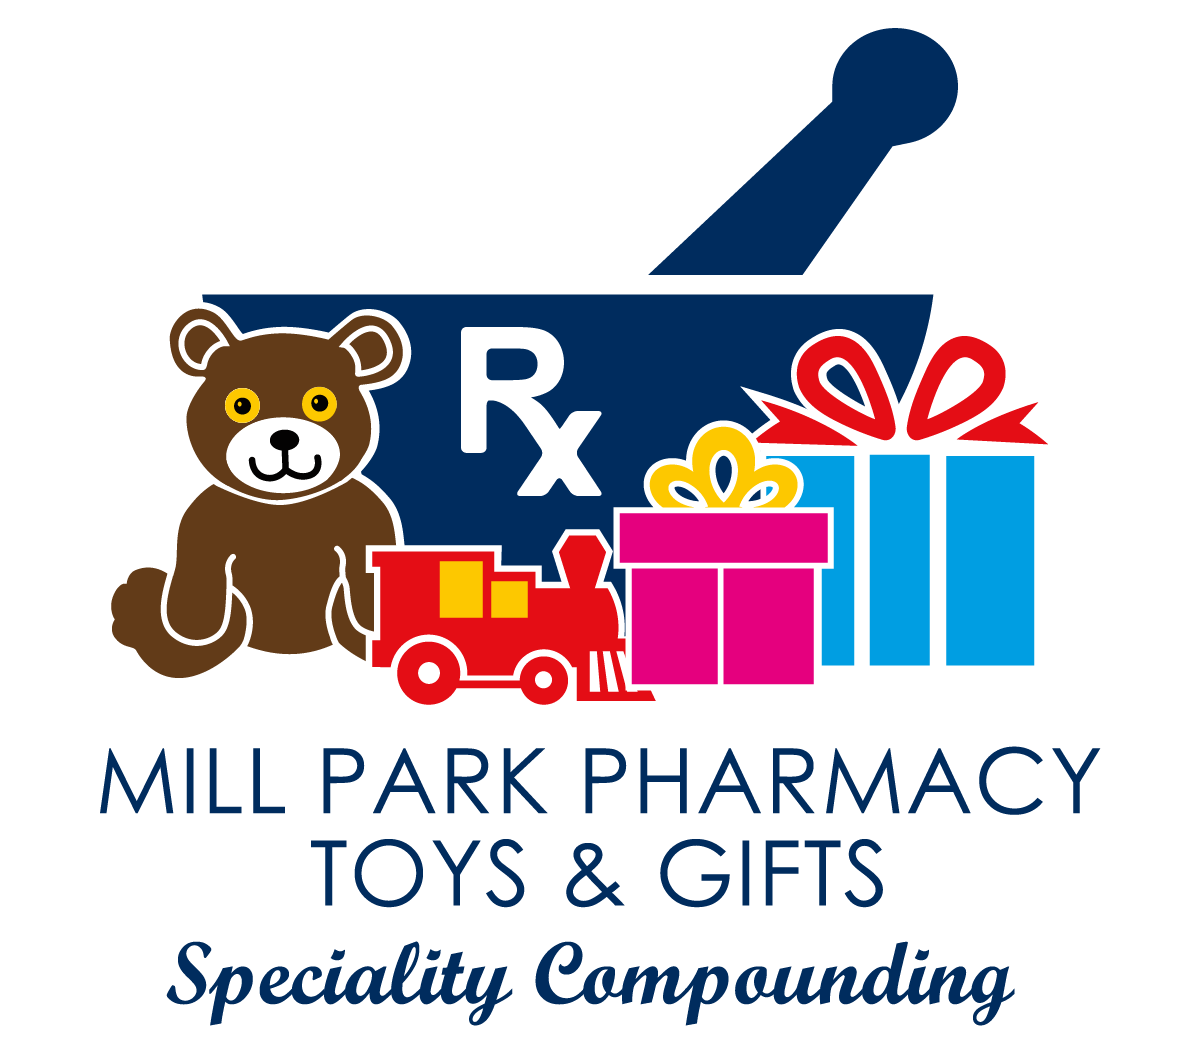 Mill Park Pharmacy